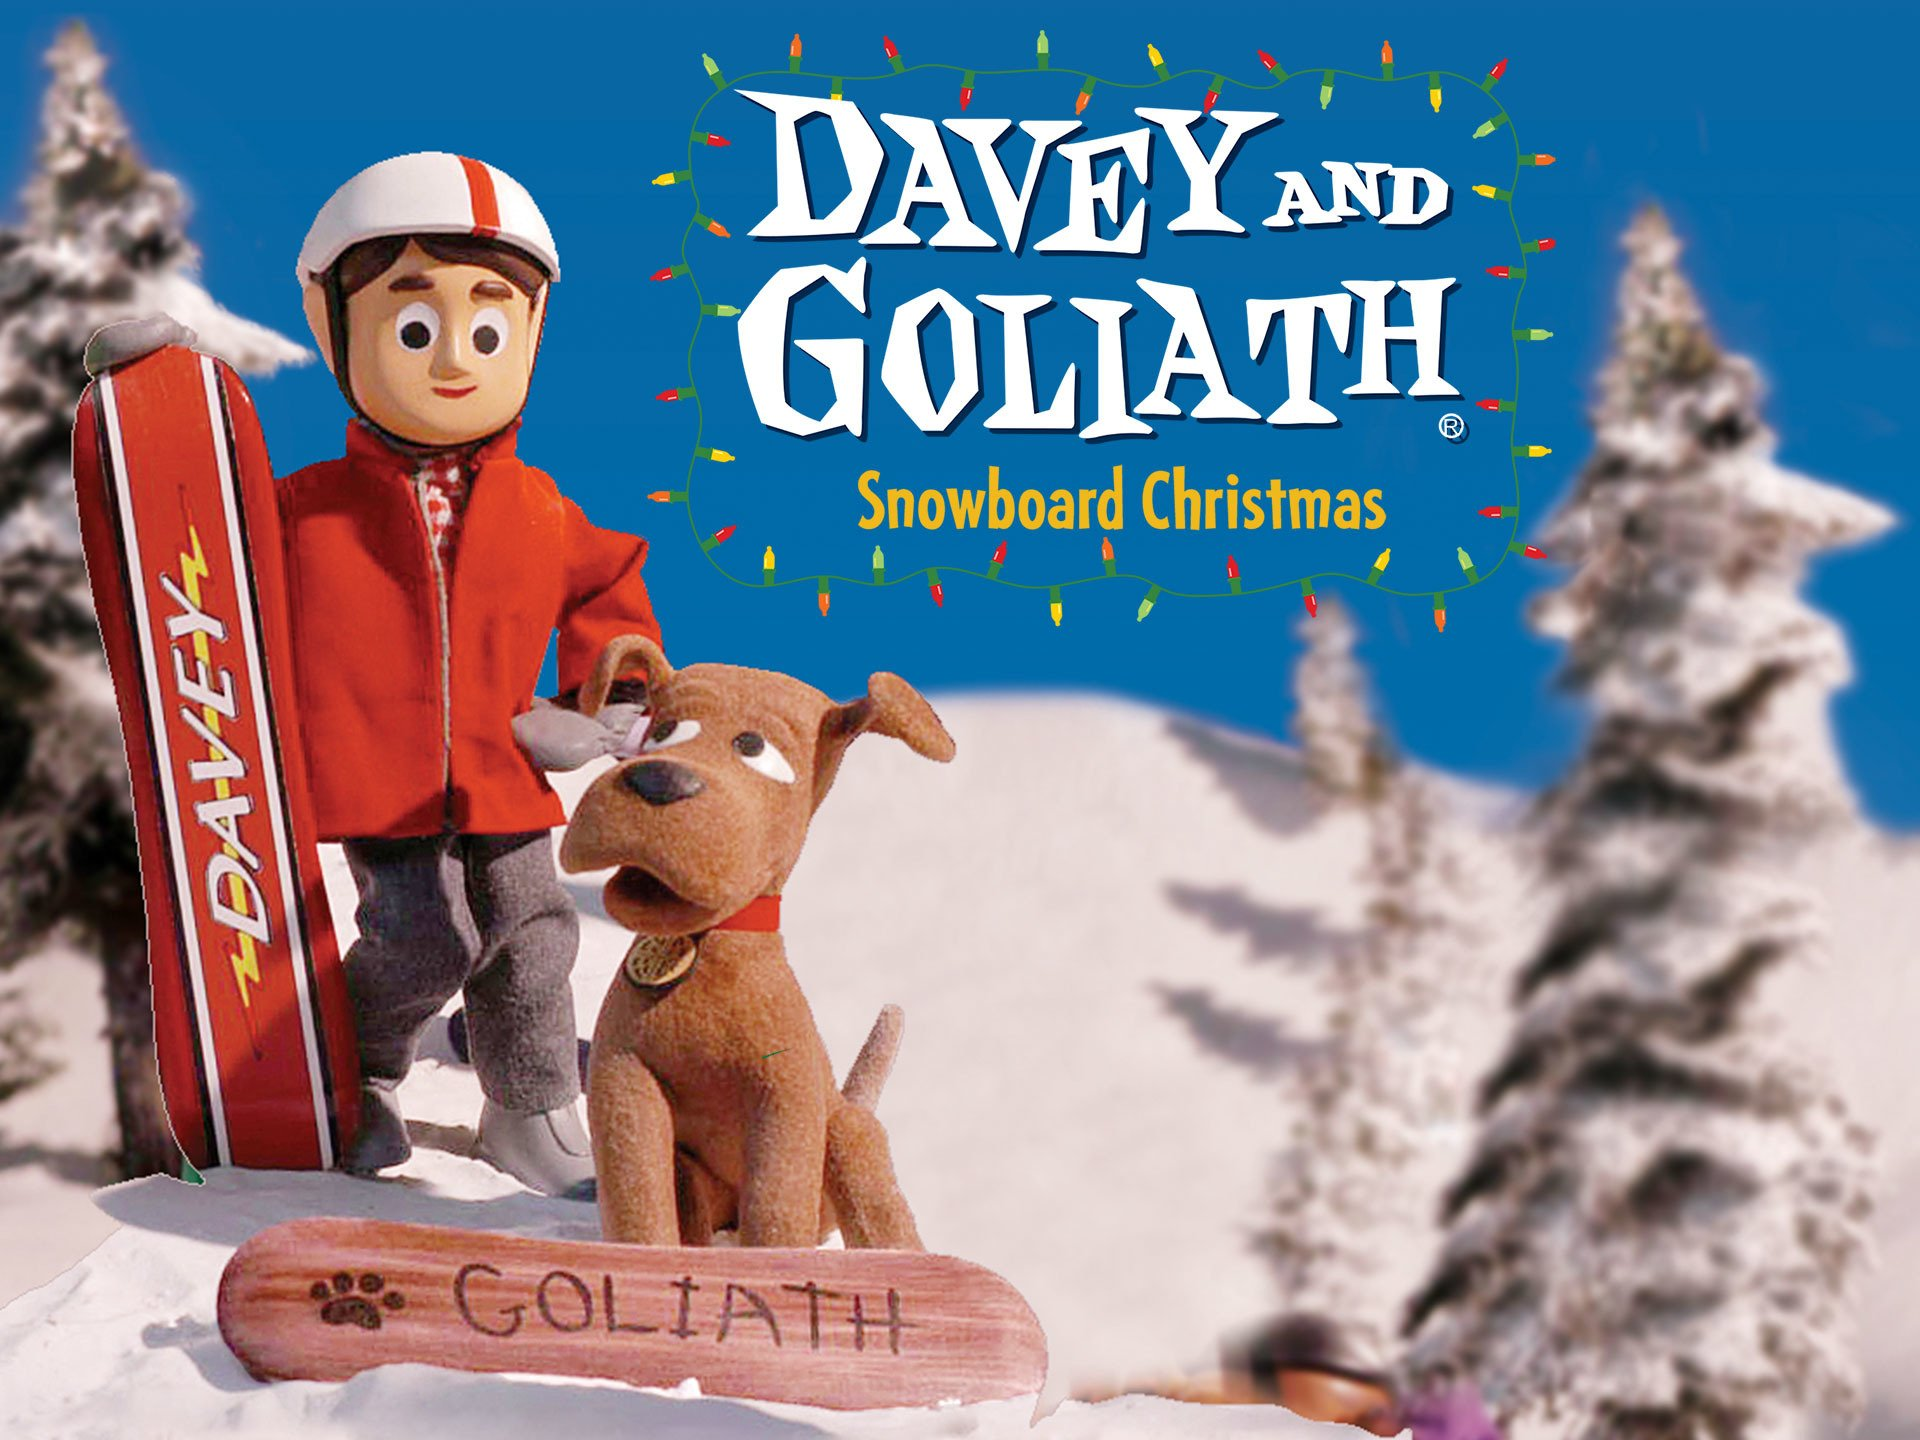 Davey & Goliath - Season 2